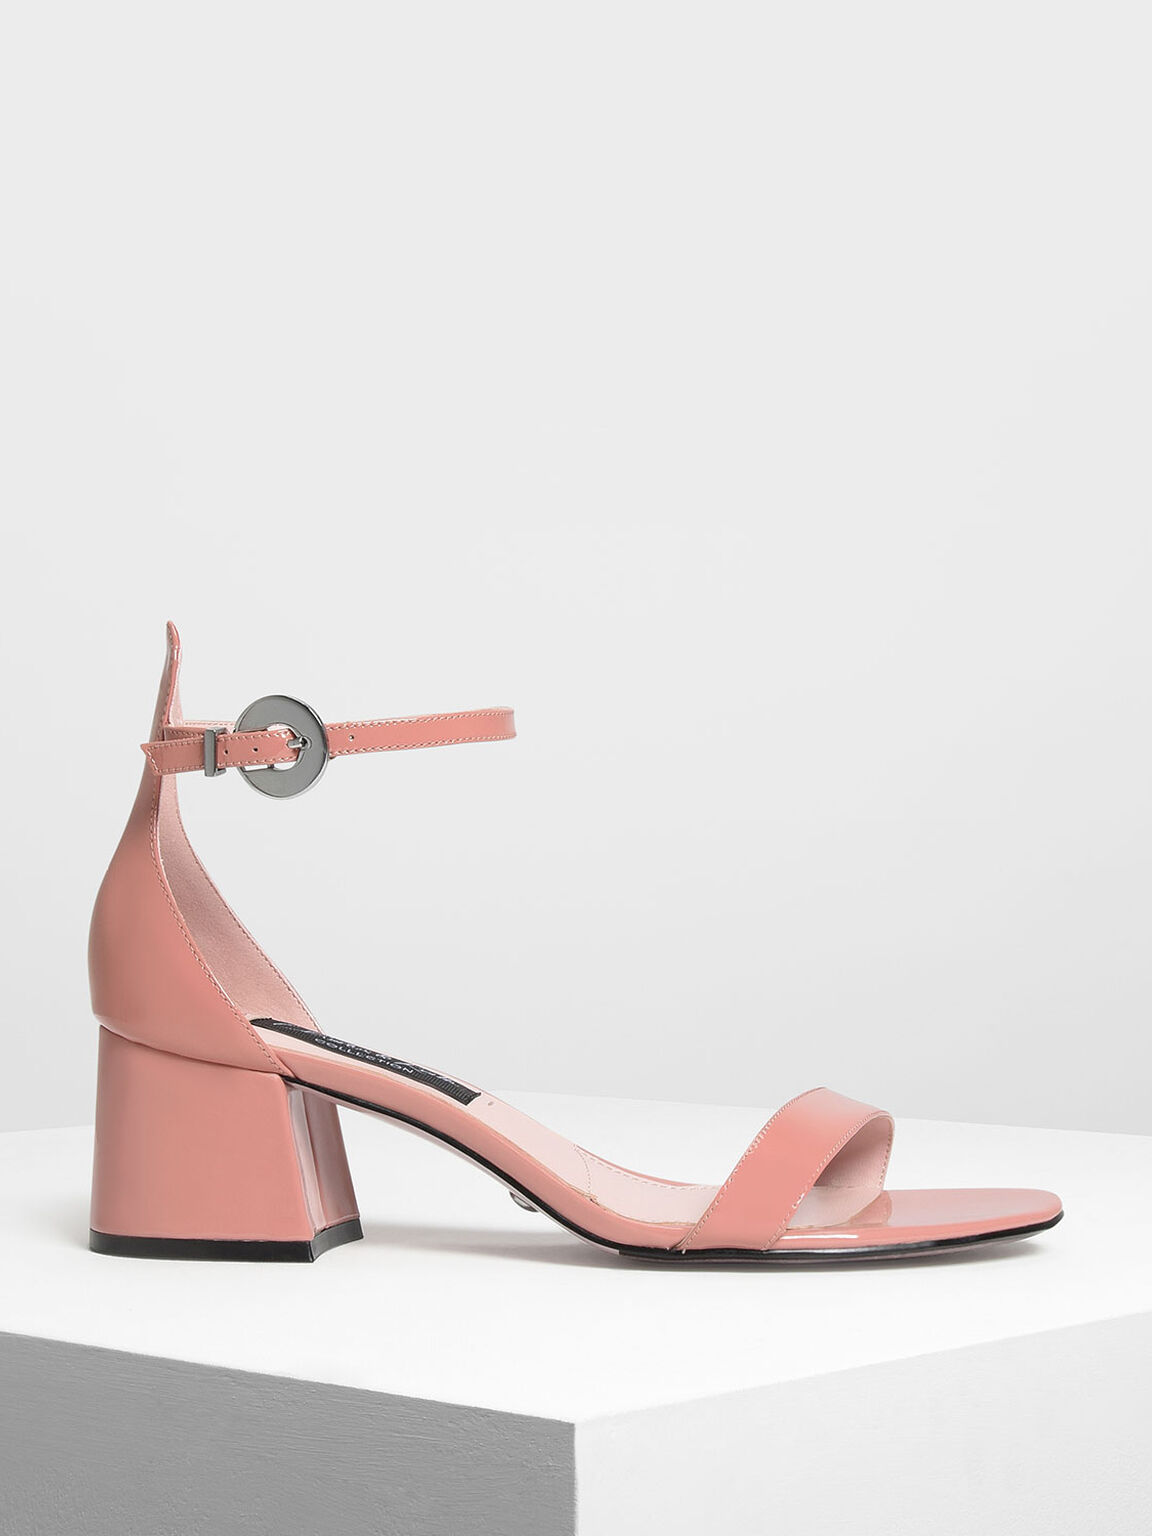 Ankle Strap Leather Heeled Sandals, Nude, hi-res